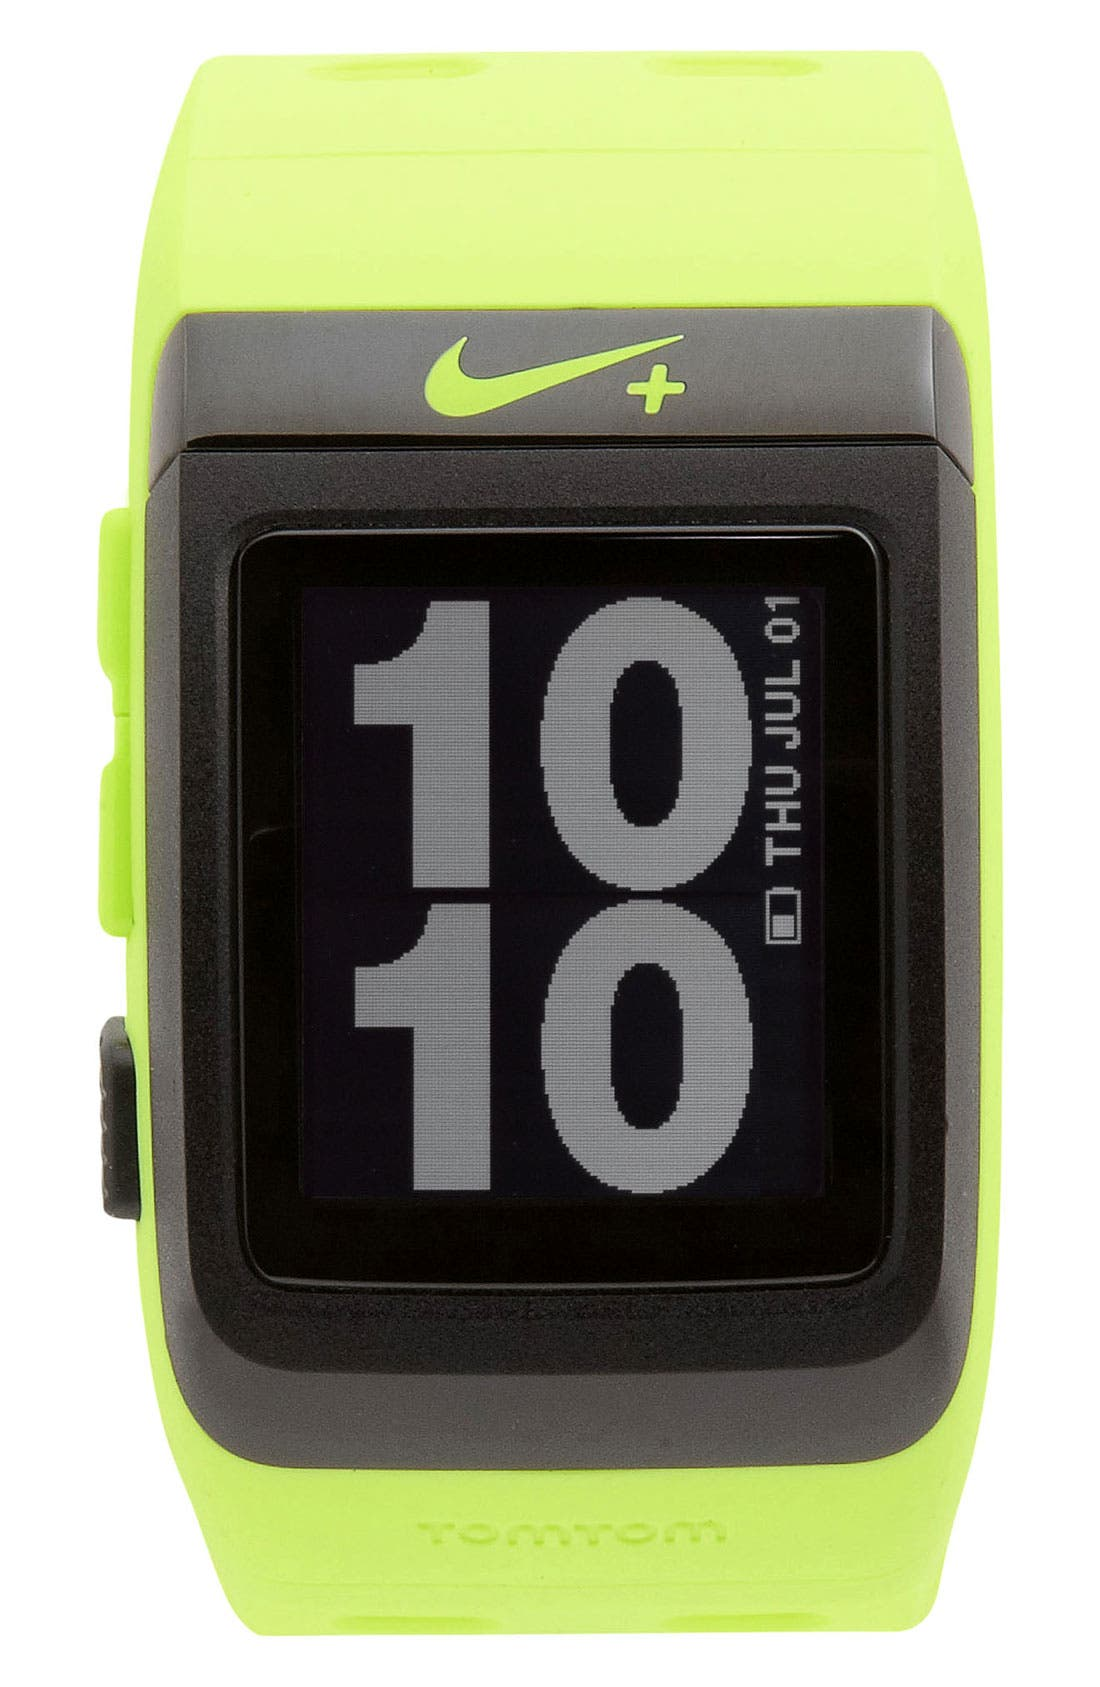 Main Image - Nike+ Sport Watch GPS, 35mm x 50mm